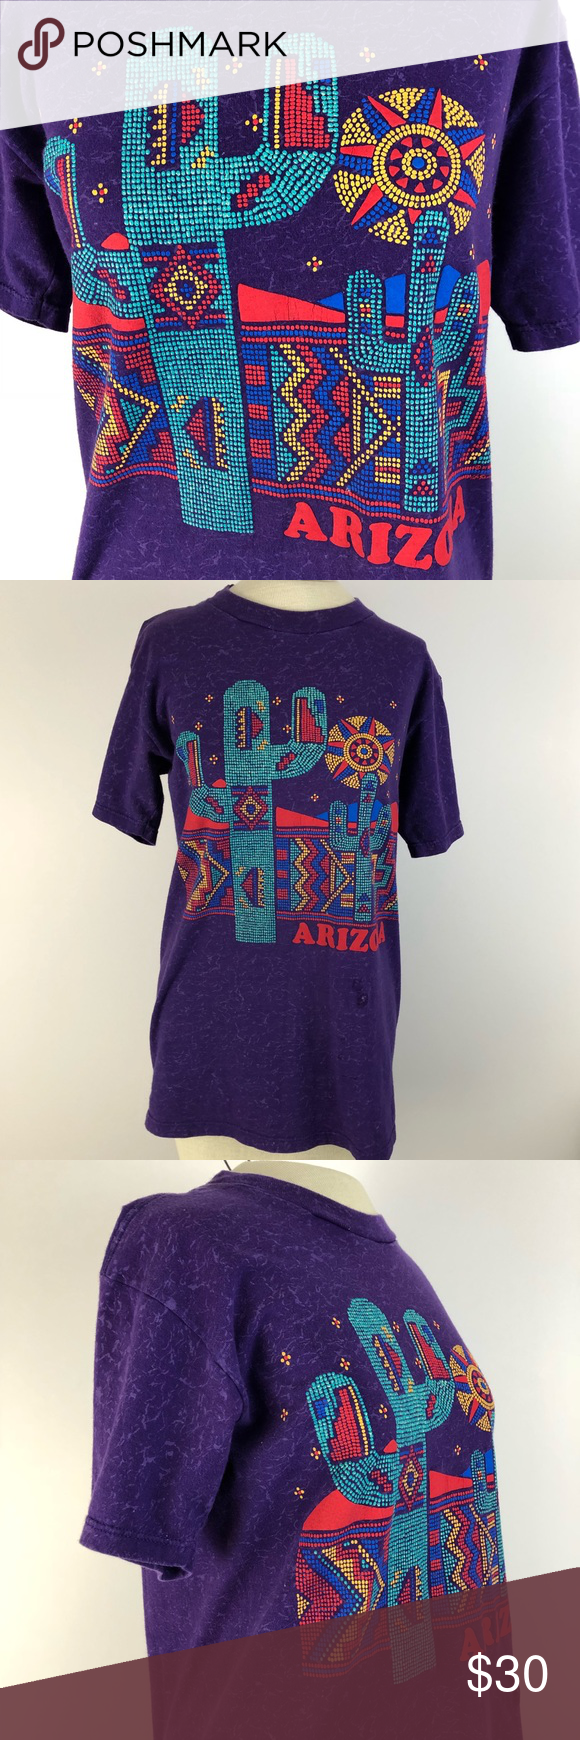 ARIZONA cactus colorful design purple tee medium Awesome Arizona shirt. Very colorful and intricate design. Pictures don't do it justice. Vintage feel. Speckled purple t shirt color. Size medium. Bundle to save! Tops Tees - Short Sleeve #arizonacactus ARIZONA cactus colorful design purple tee medium Awesome Arizona shirt. Very colorful and intricate design. Pictures don't do it justice. Vintage feel. Speckled purple t shirt color. Size medium. Bundle to save! Tops Tees - Short Sleeve #arizon #arizonacactus